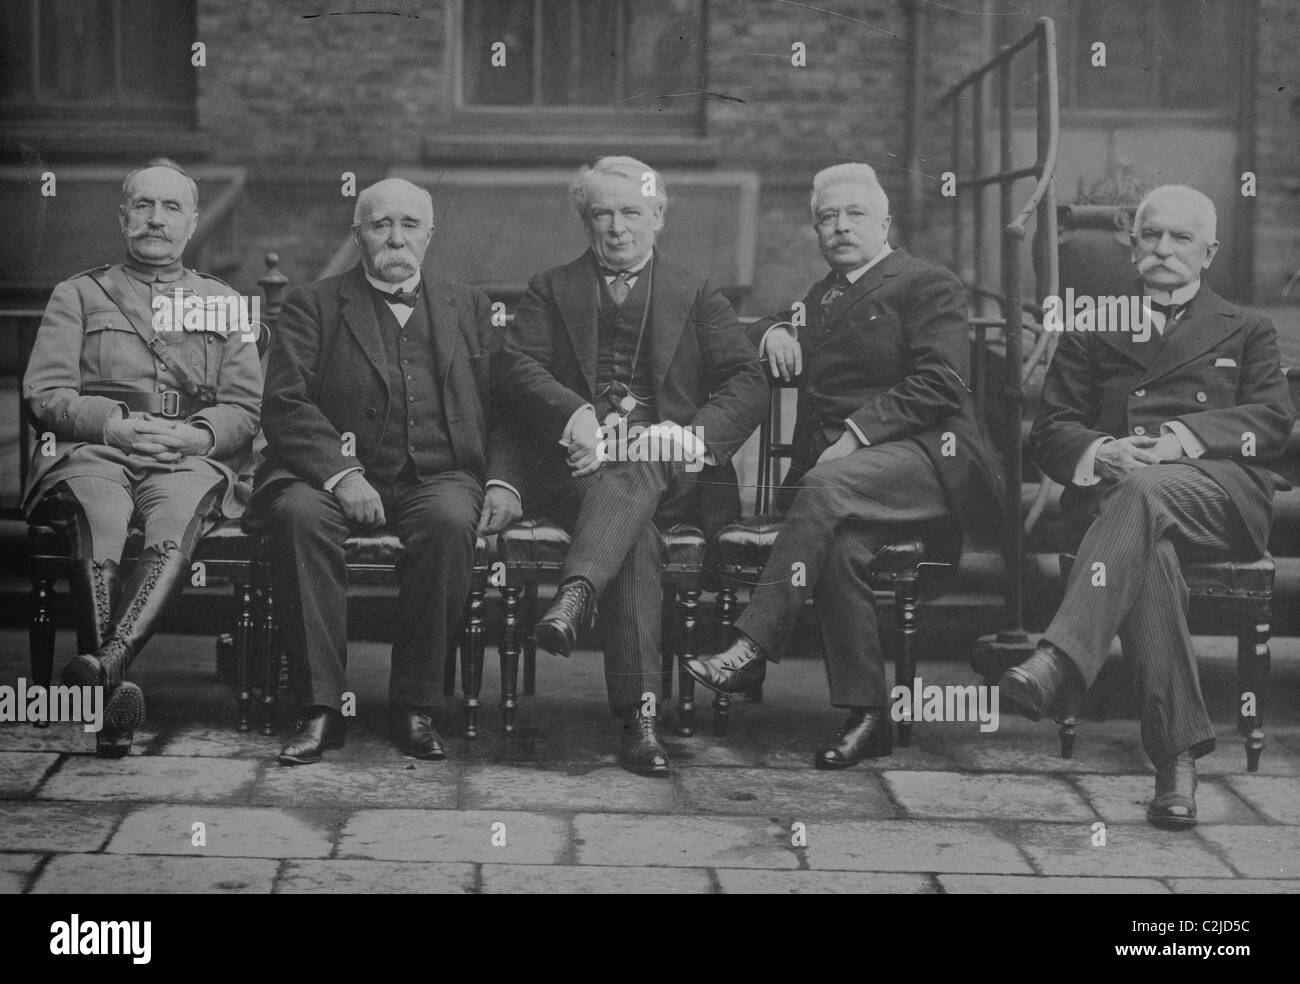 Foch, Clemenceau, Lloyd George, Orlando, Sonnino pose in world leader's conference - Stock Image